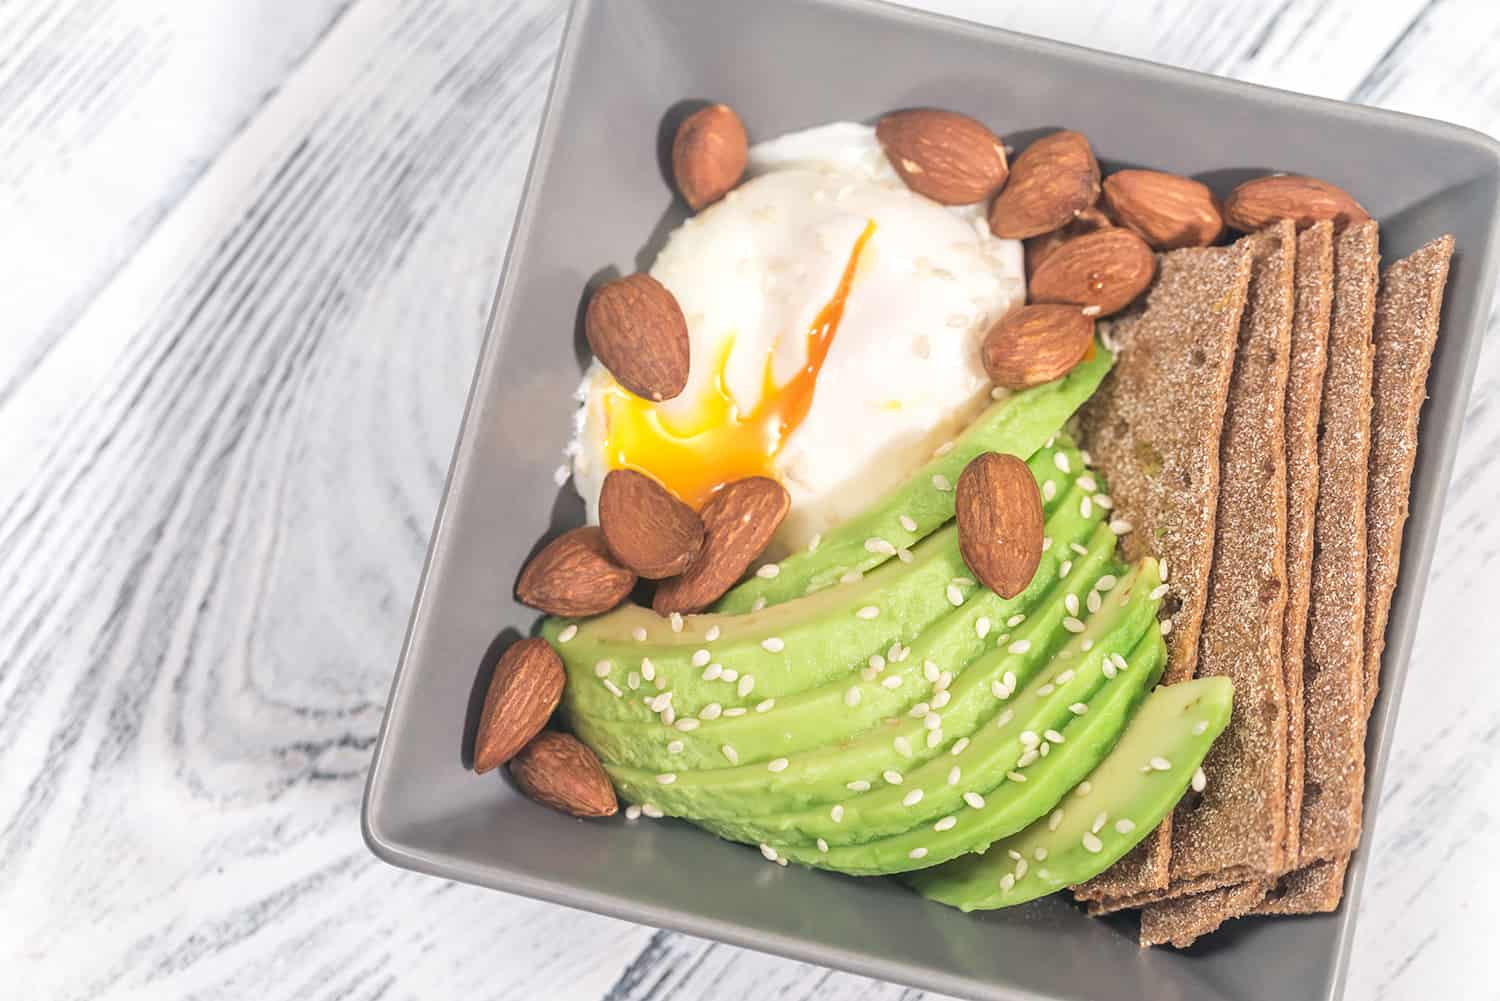 Poached egg with avocado and almonds